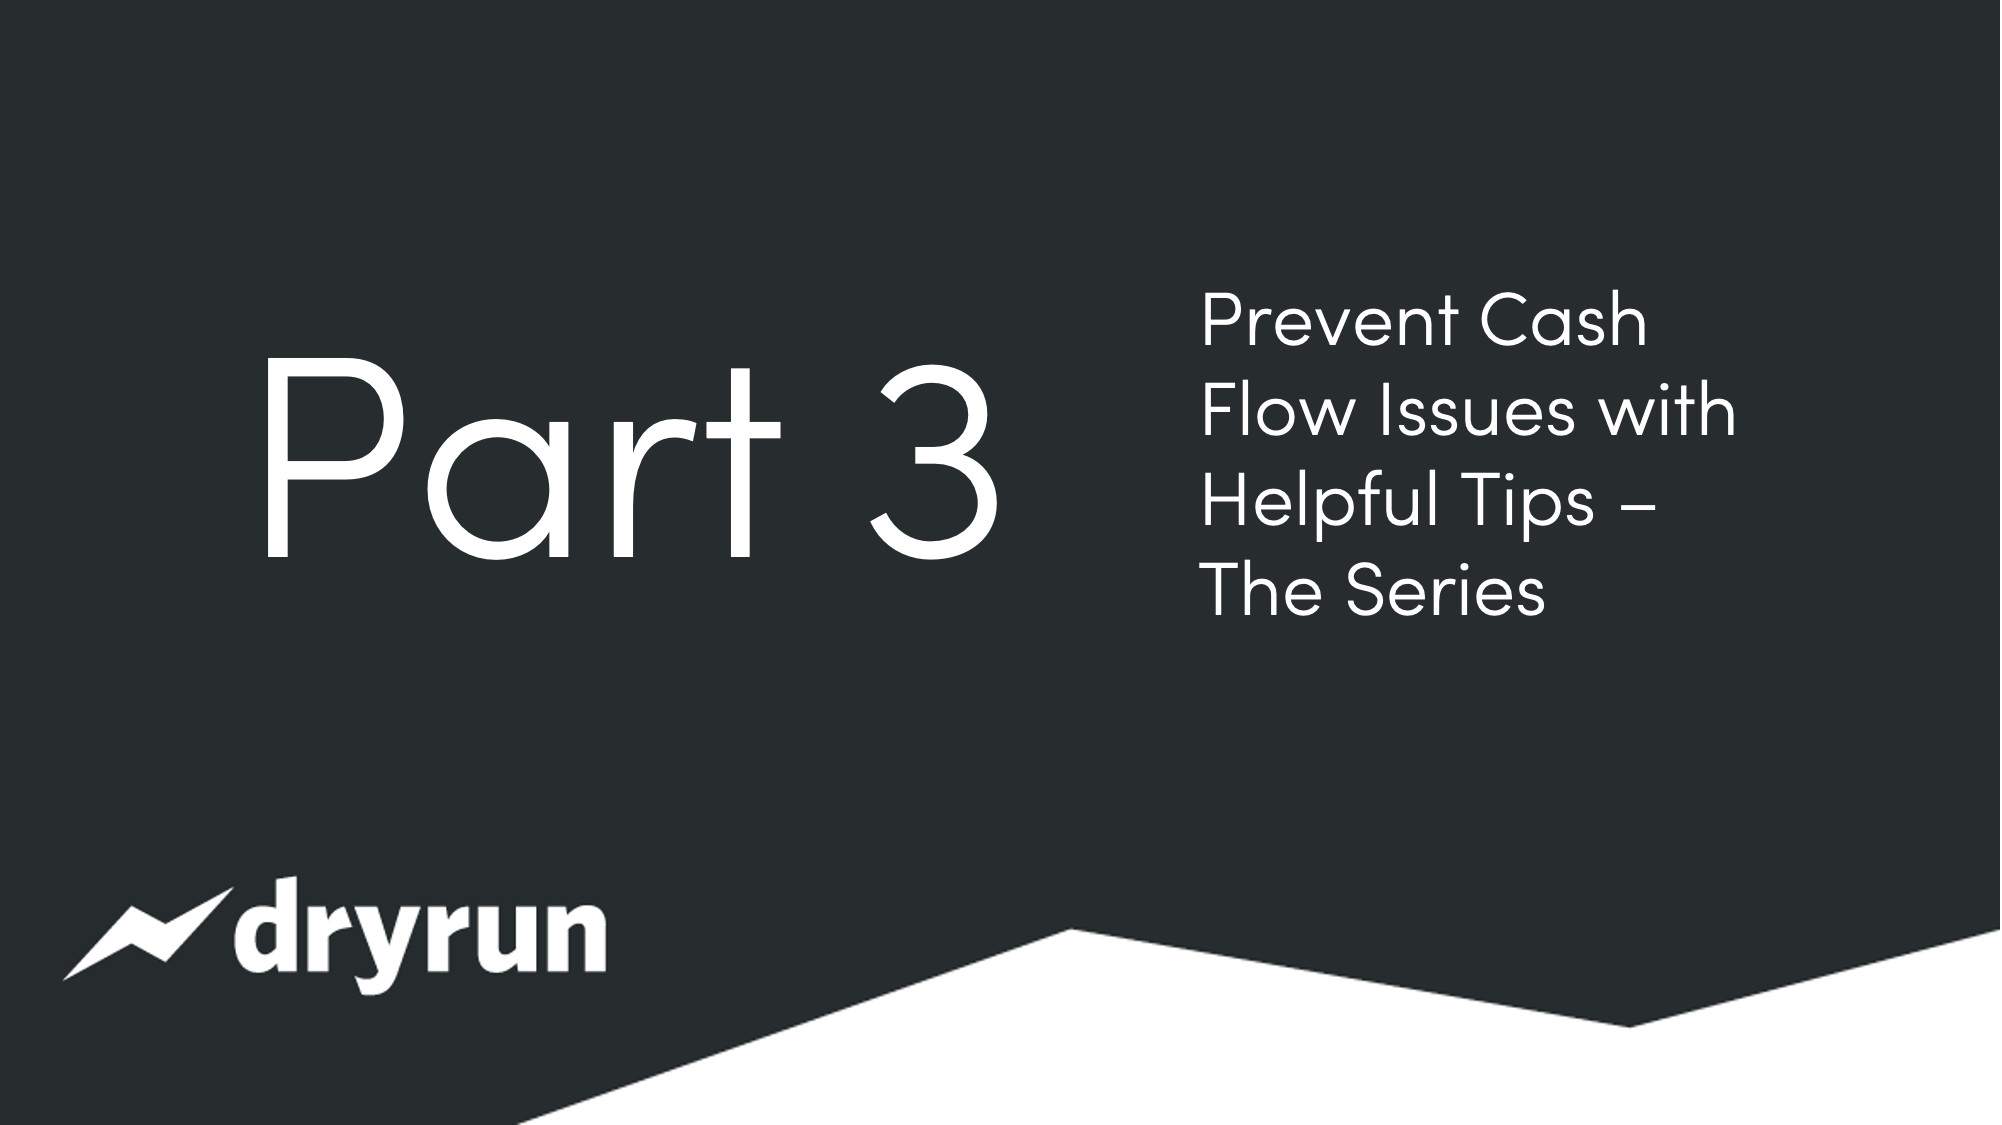 Prevent Cash Flow Issues with Helpful Tips - Part 3